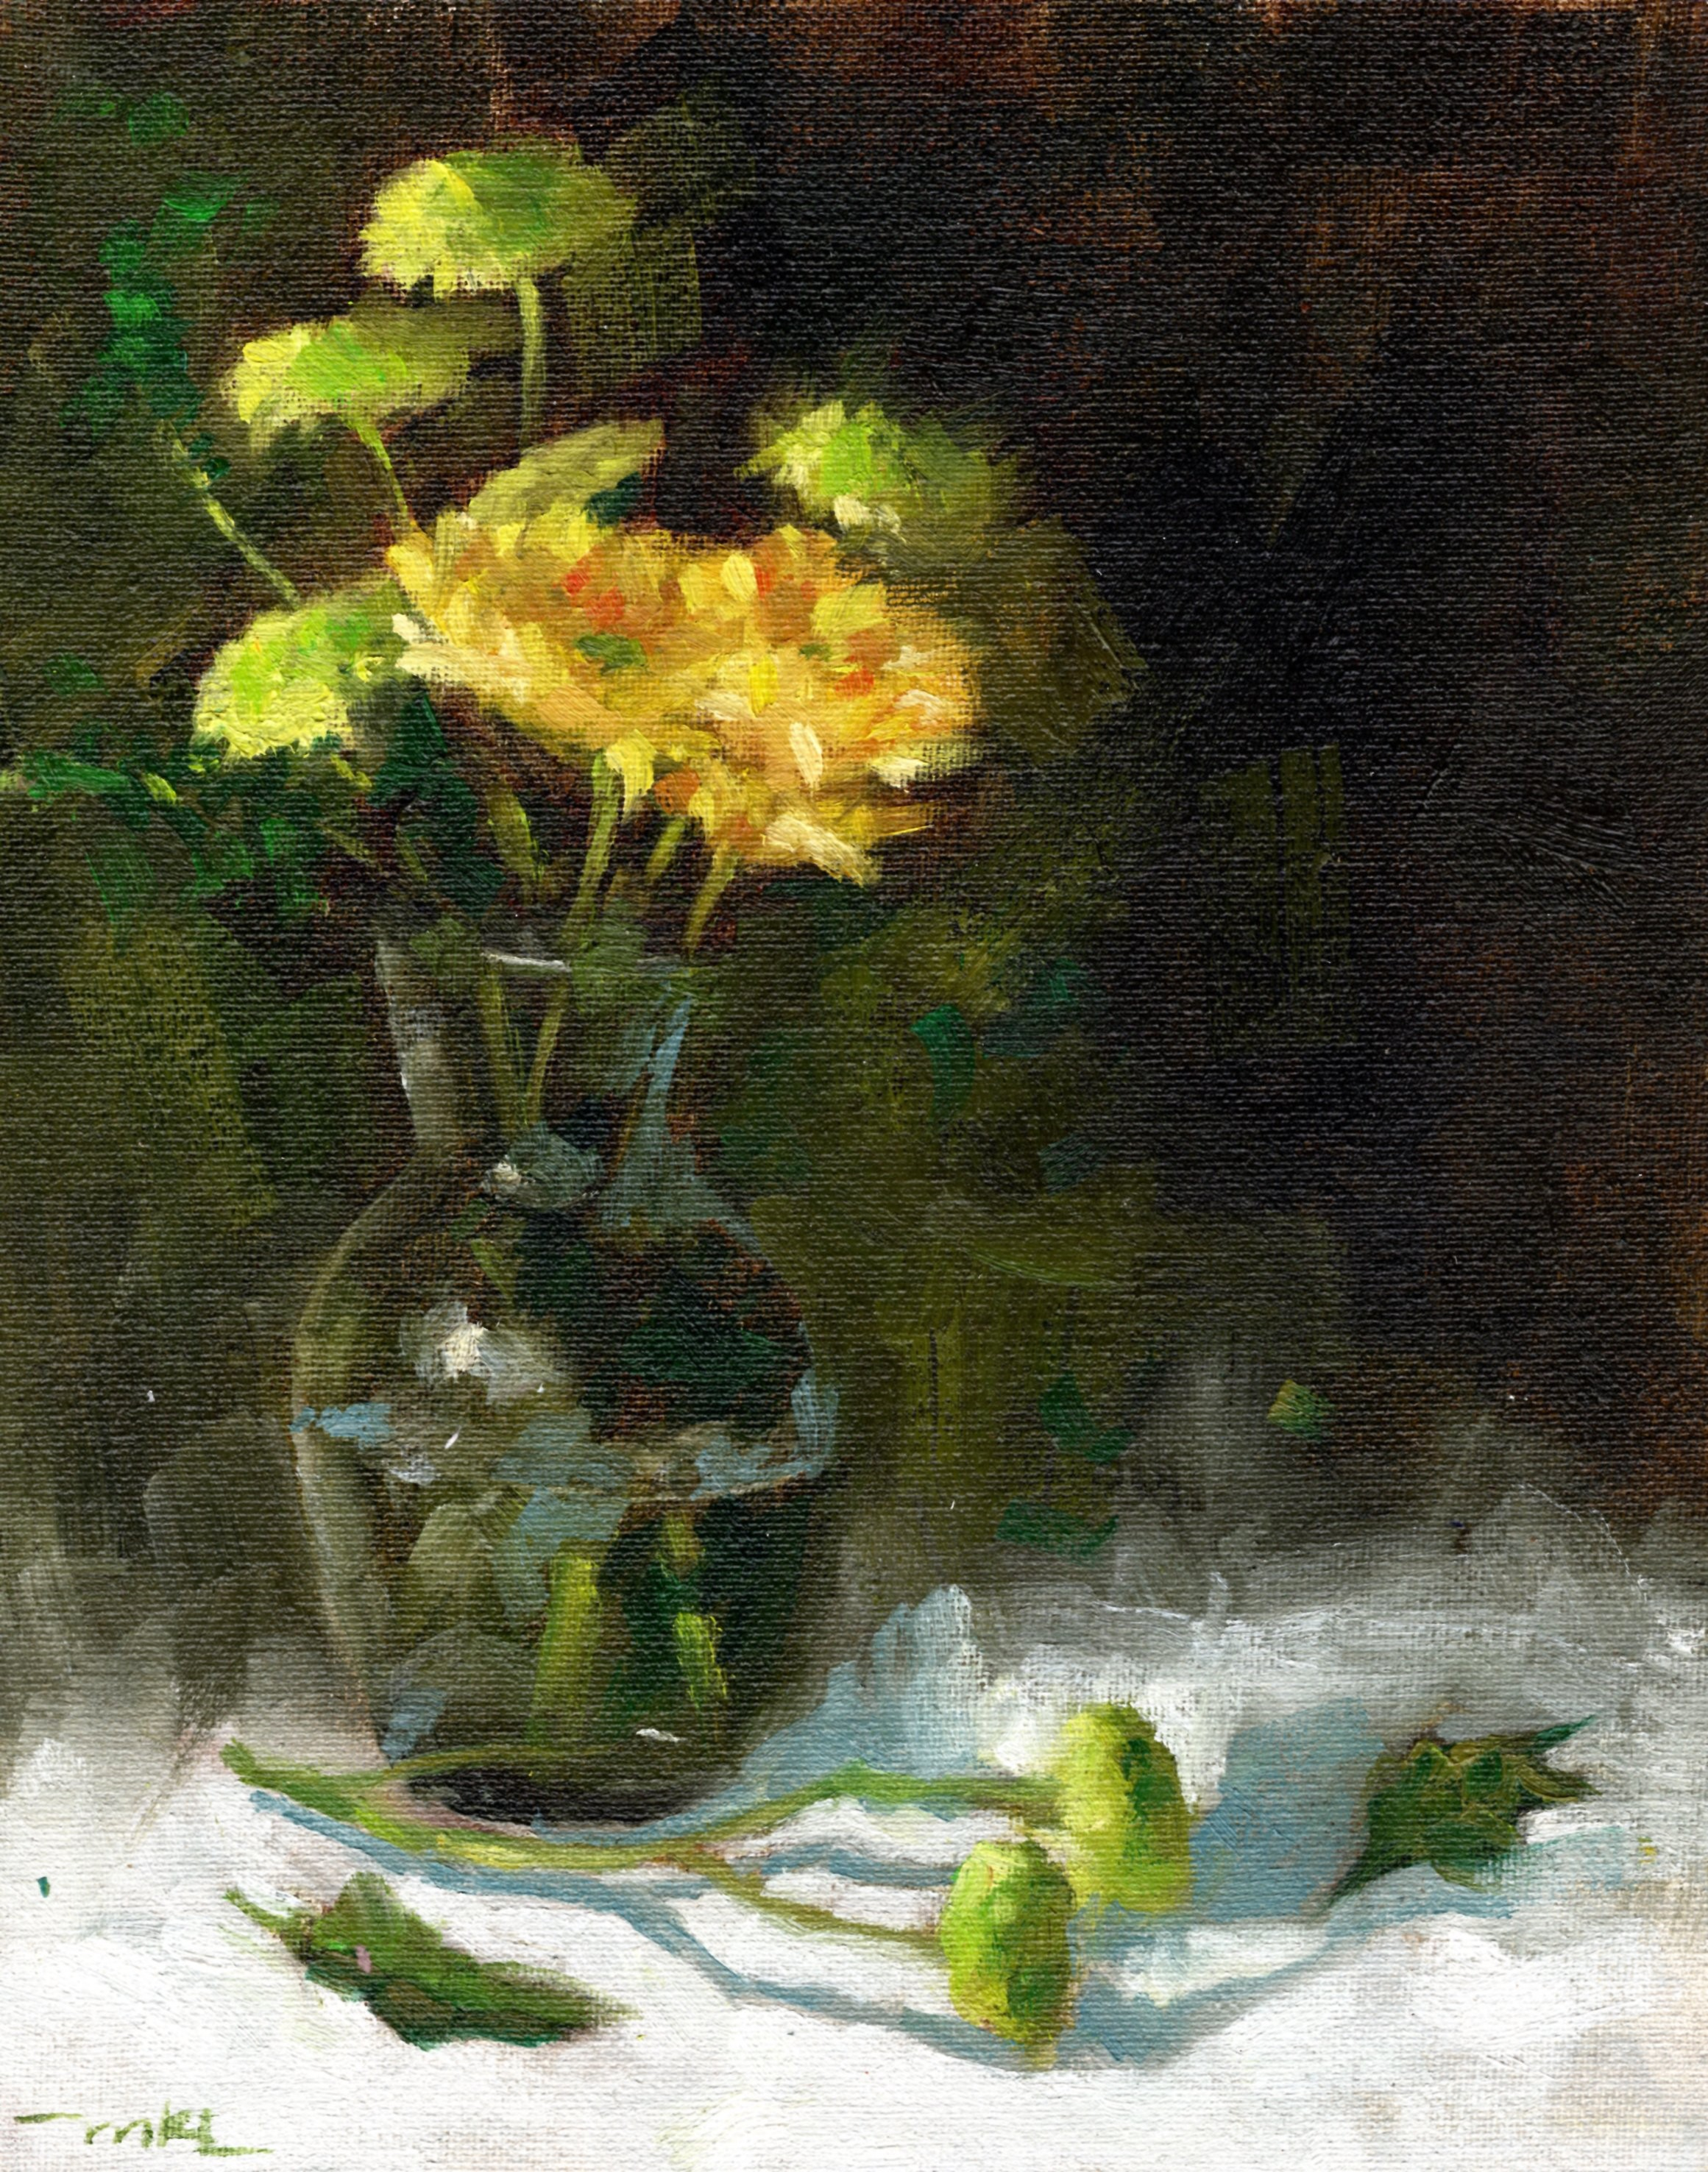 Yellow Flowers in a Glass Vase 2016 10x8